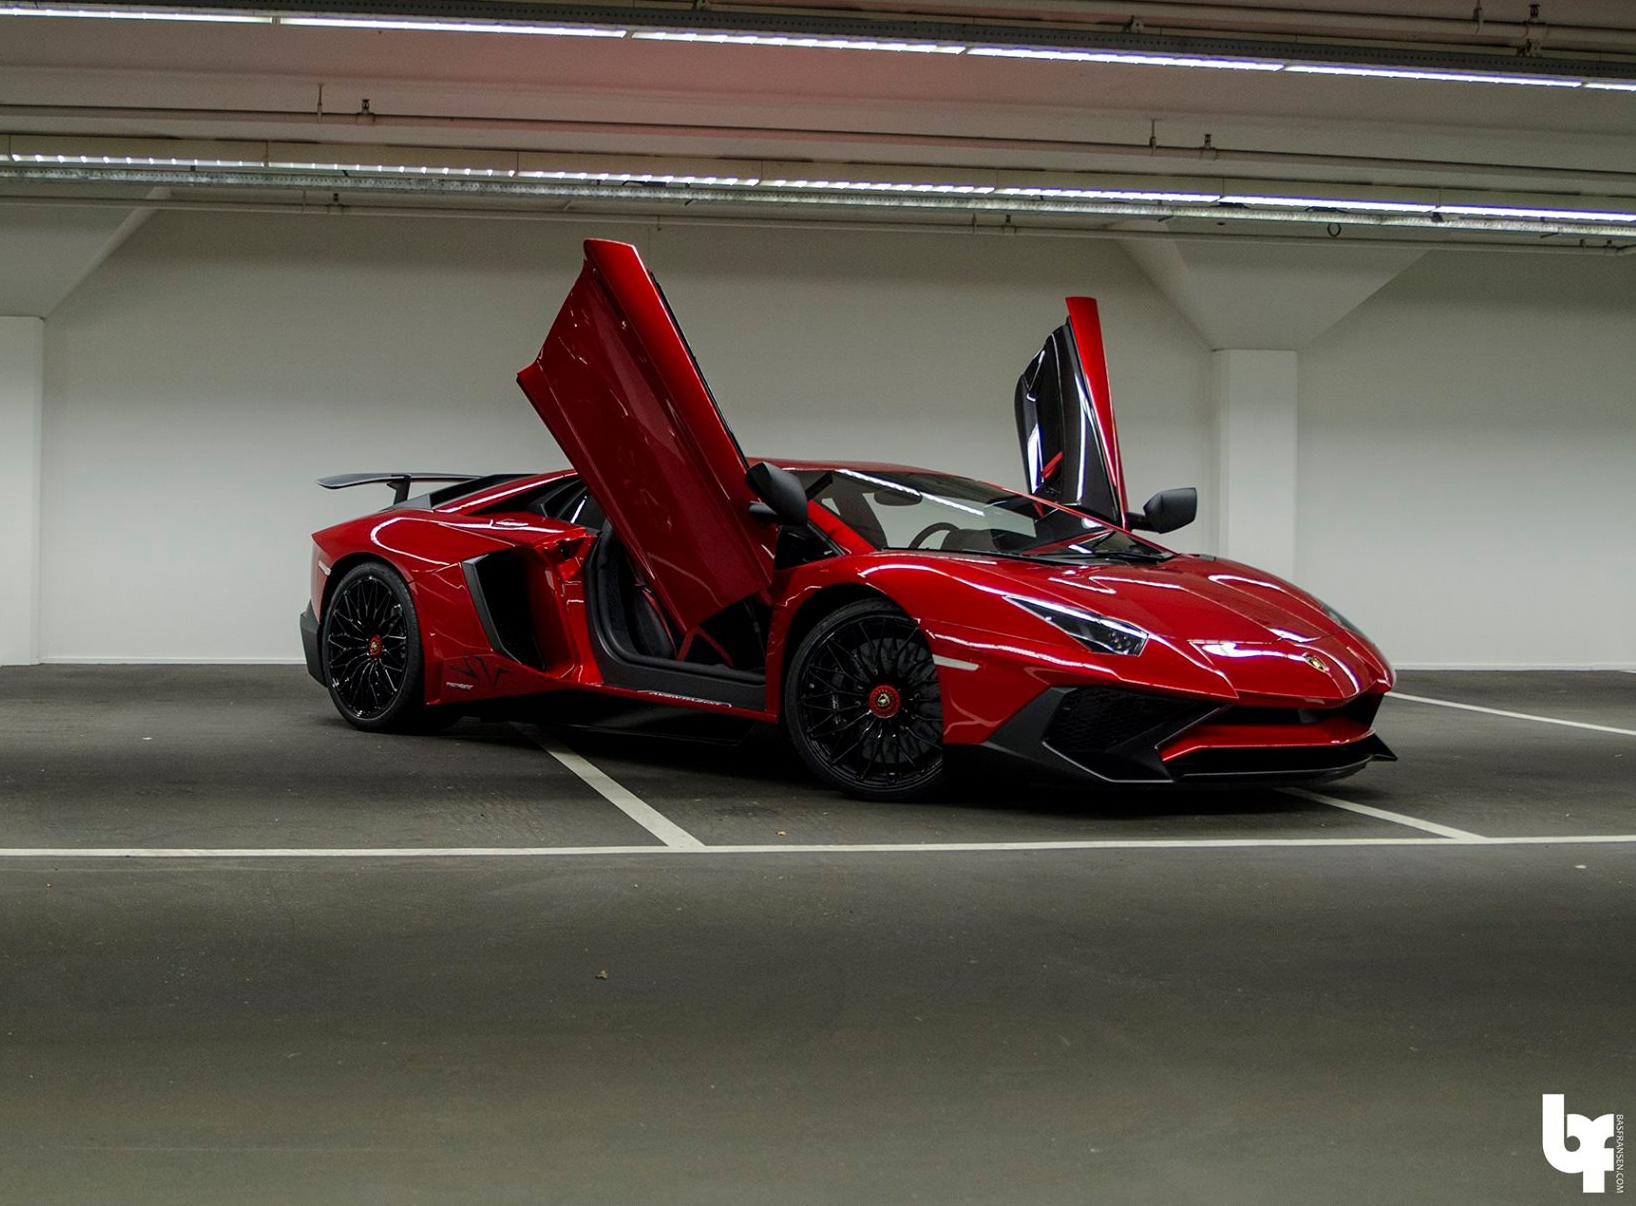 Afrojack Cant Stop Buying New Cars Your EDM - Fast car edm